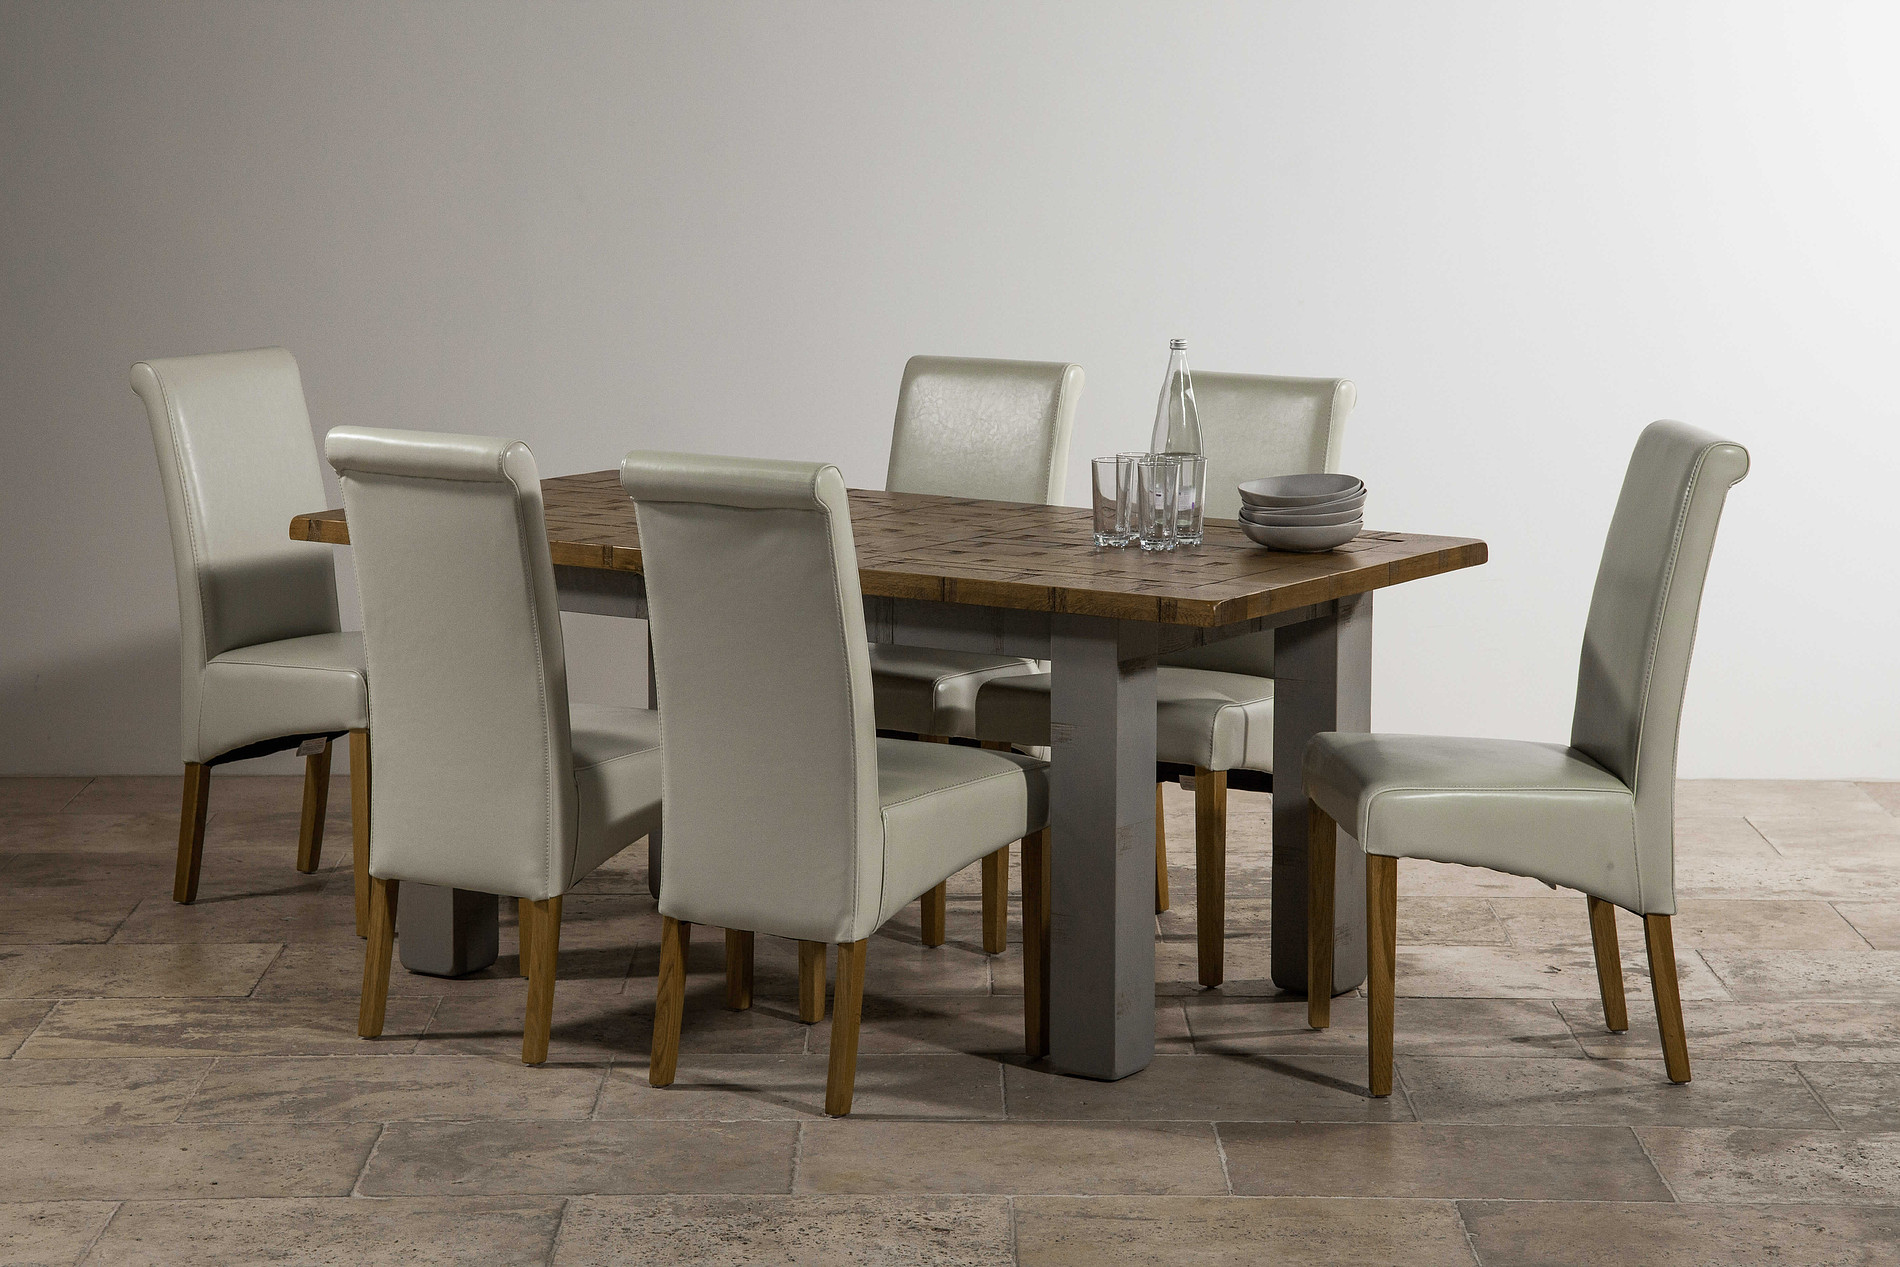 Clermont Painted Rough Sawn Solid Oak 5ft x 3ft Small  : clermont painted rough sawn solid oak 5ft x 3ft small extending dining table 6 scroll back cream leather chair with solid oak legs 546dbfd33dbae from oakfurnitureland.co.uk size 1900 x 1267 jpeg 534kB